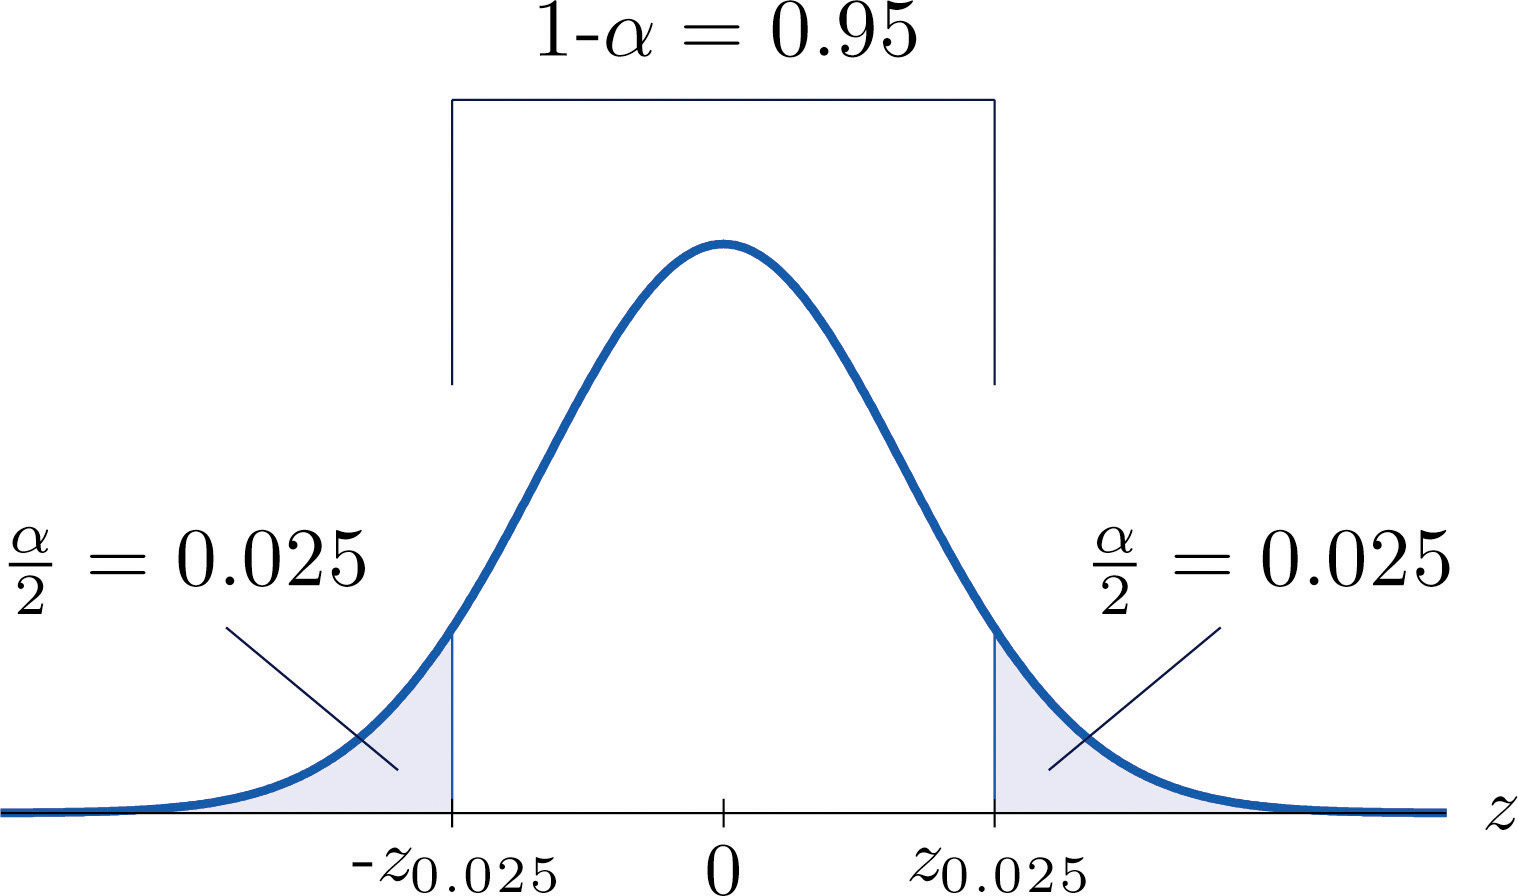 how to find confidence interval 98